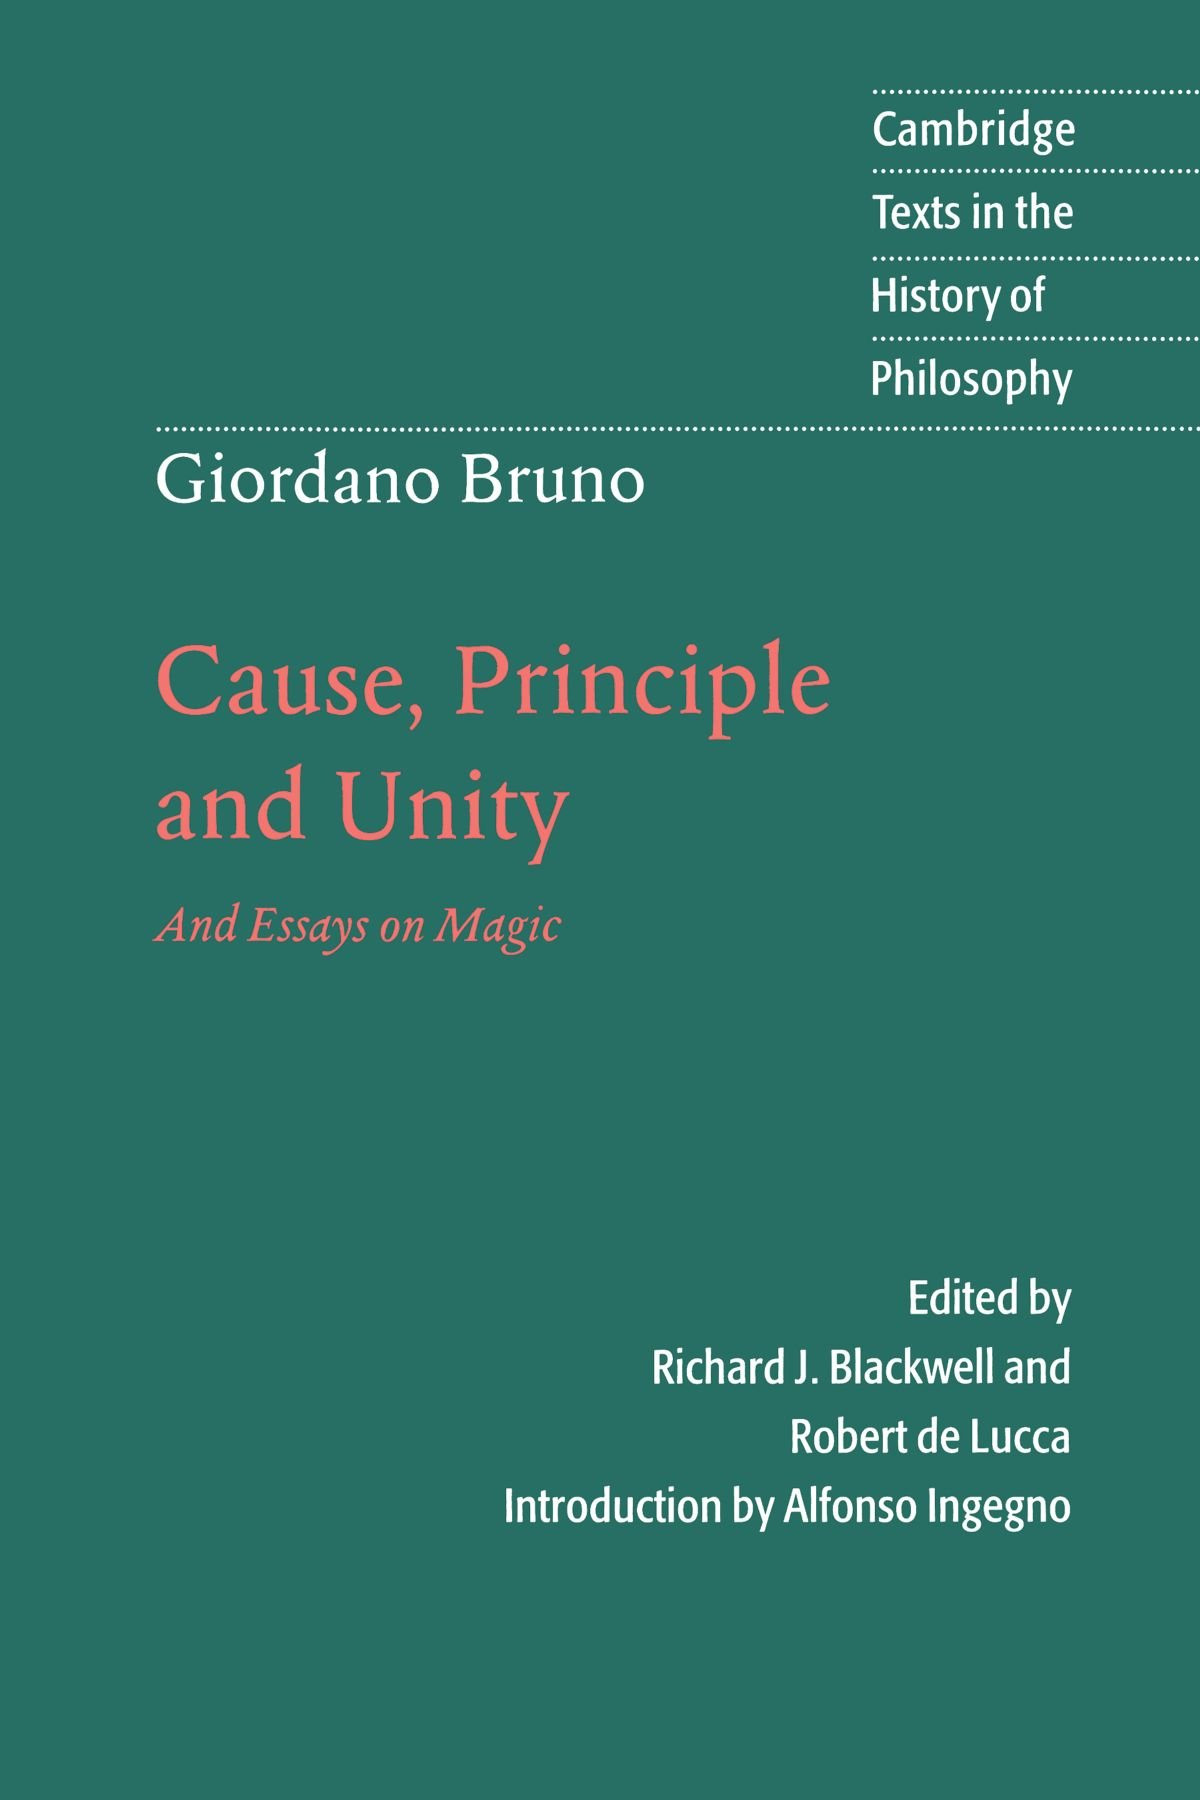 giordano bruno cause principle and unity and essays on magic giordano bruno cause principle and unity and essays on magic cambridge texts in the history of philosophy giordano bruno richard j blackwell